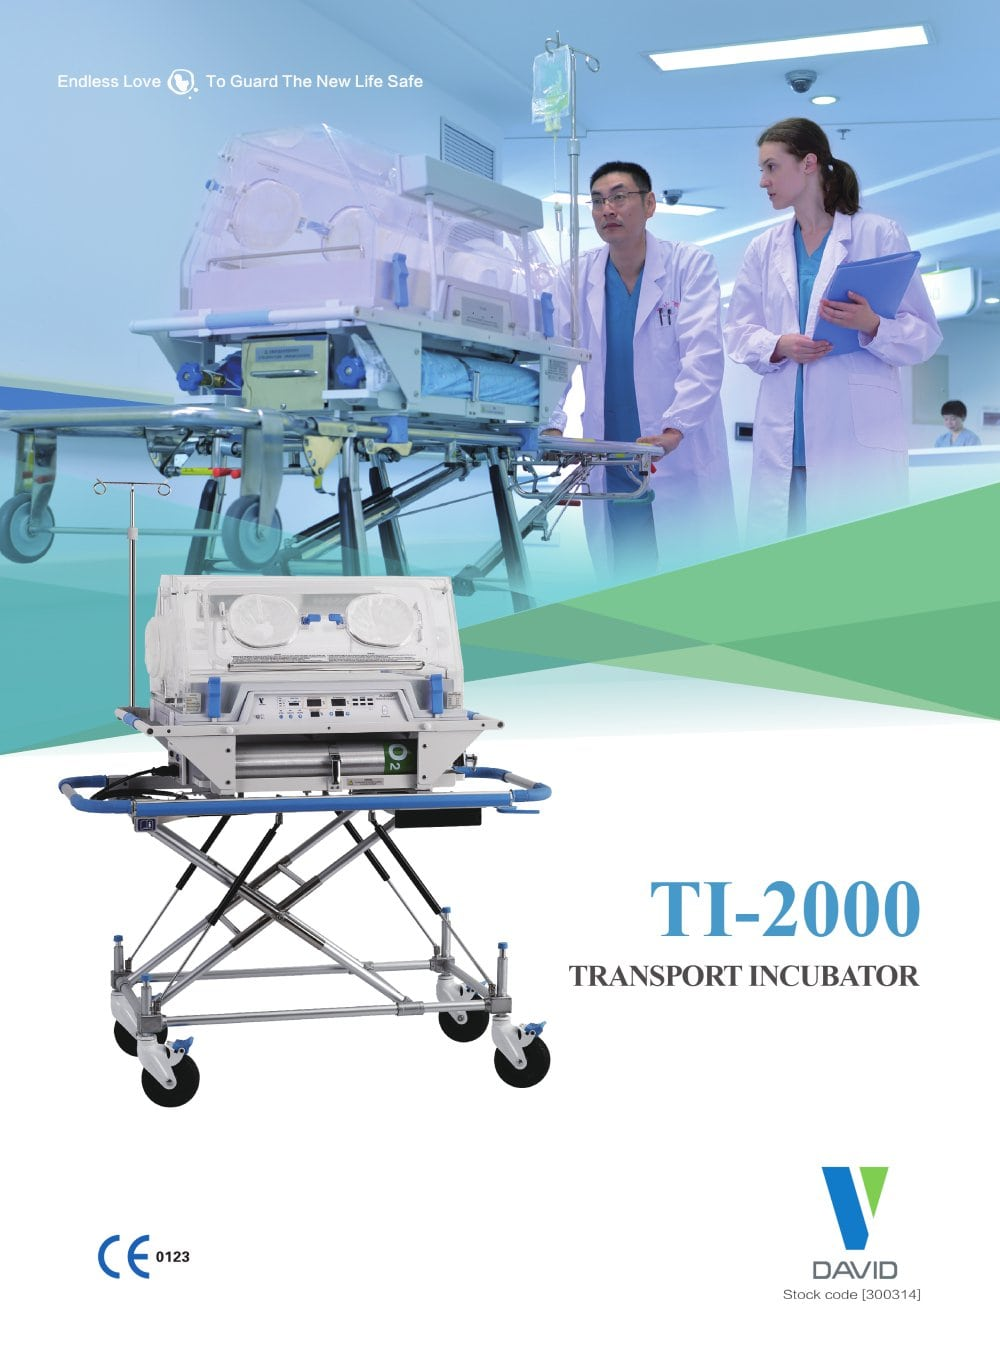 Transport Incubator - T1-2000 - 1 / 2 Pages